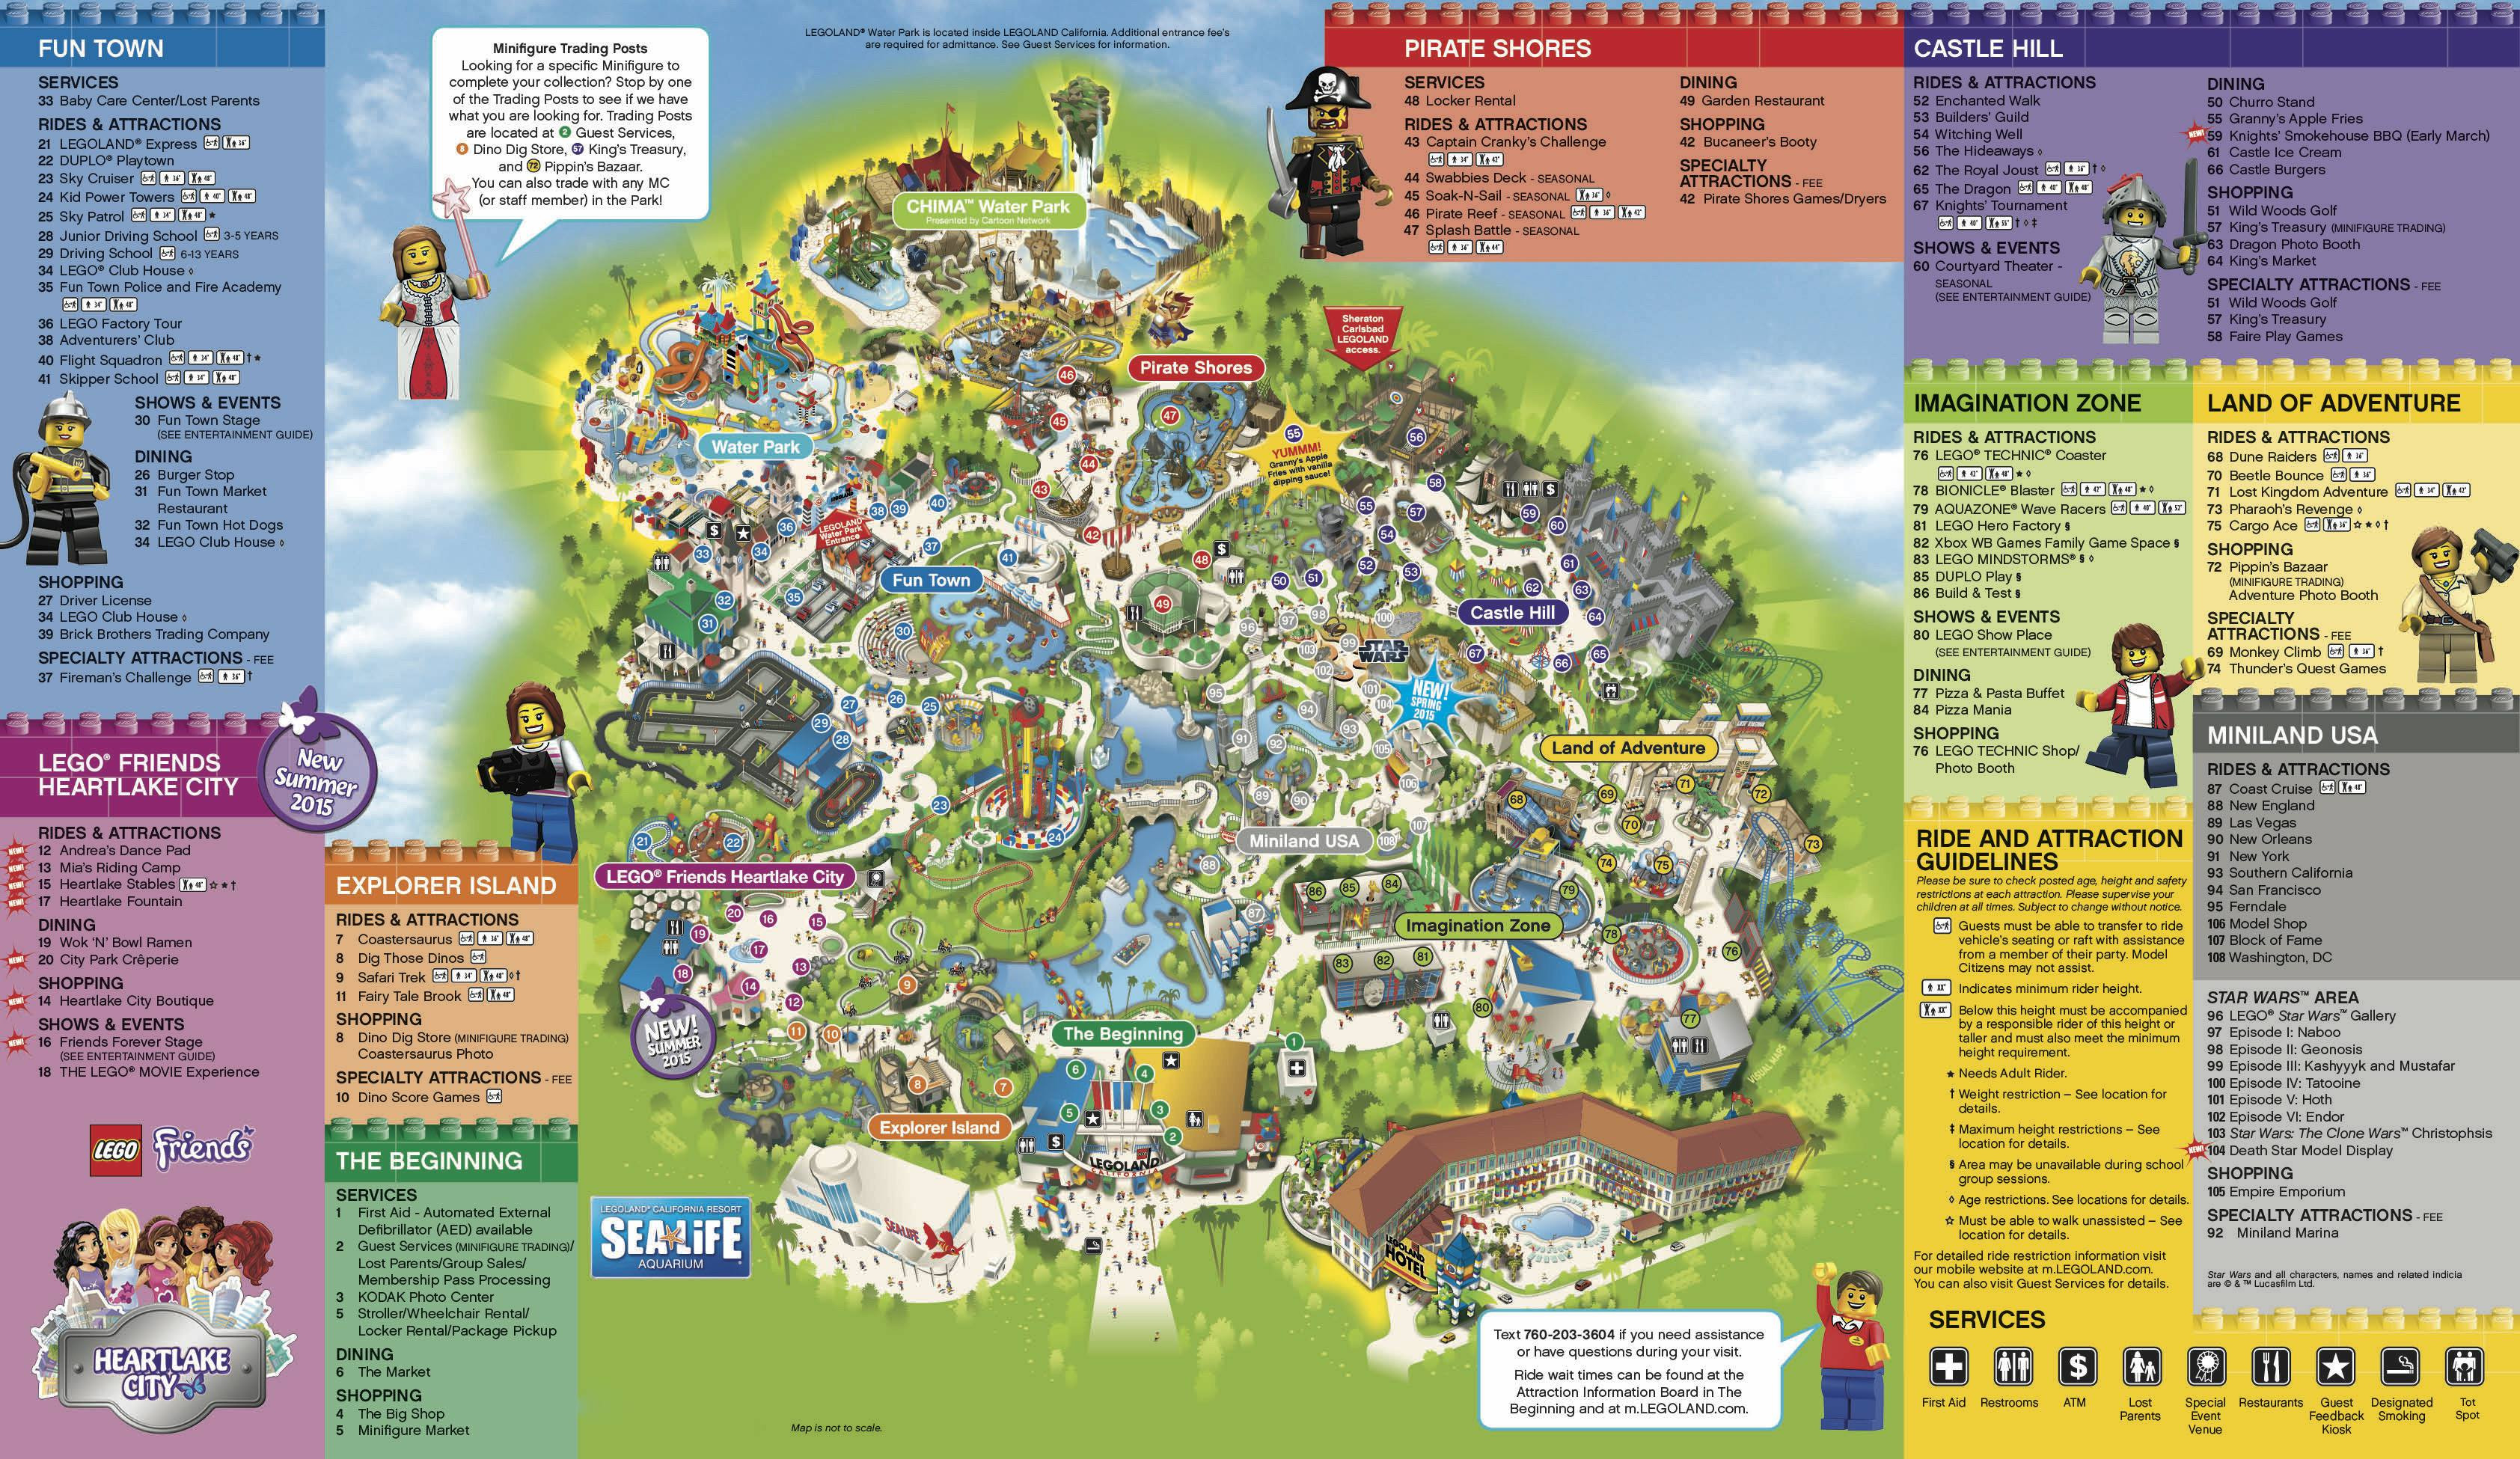 Legoland California Address And Map Best Of San Diego Zoo Address - Mapquest California Map